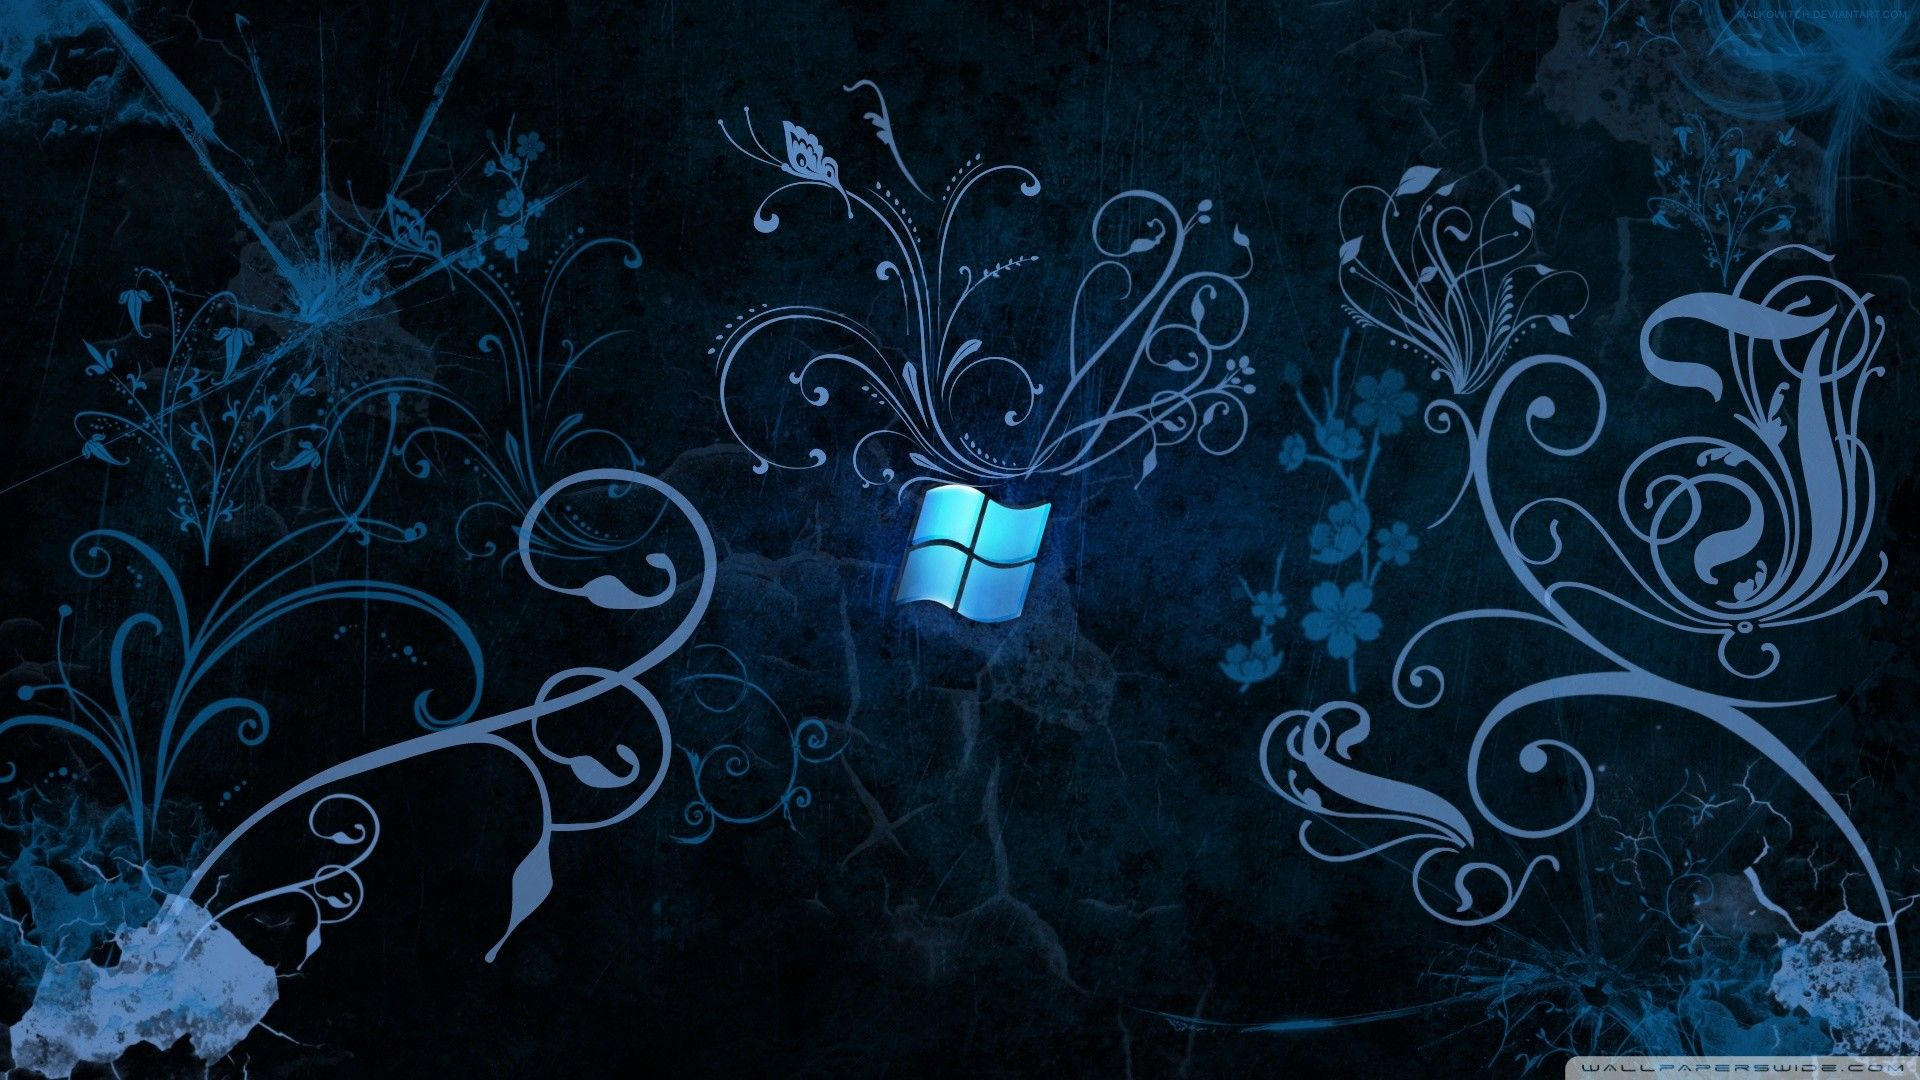 1920x1080 Windows 8 Gif wallpaper Source · Windows 8 1 HD